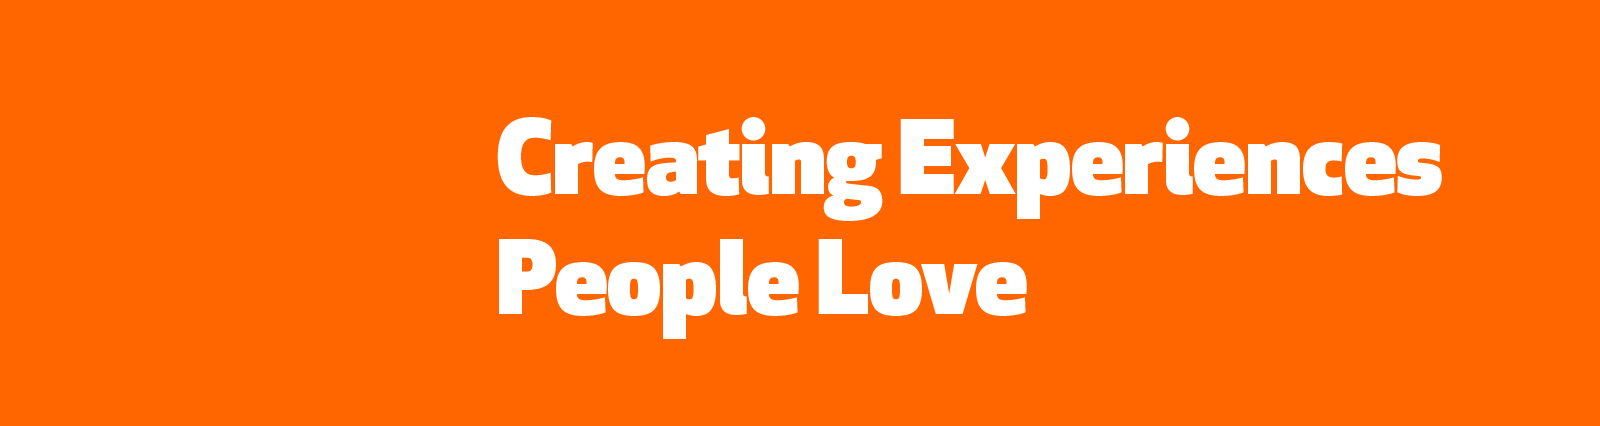 Creating experiences people love